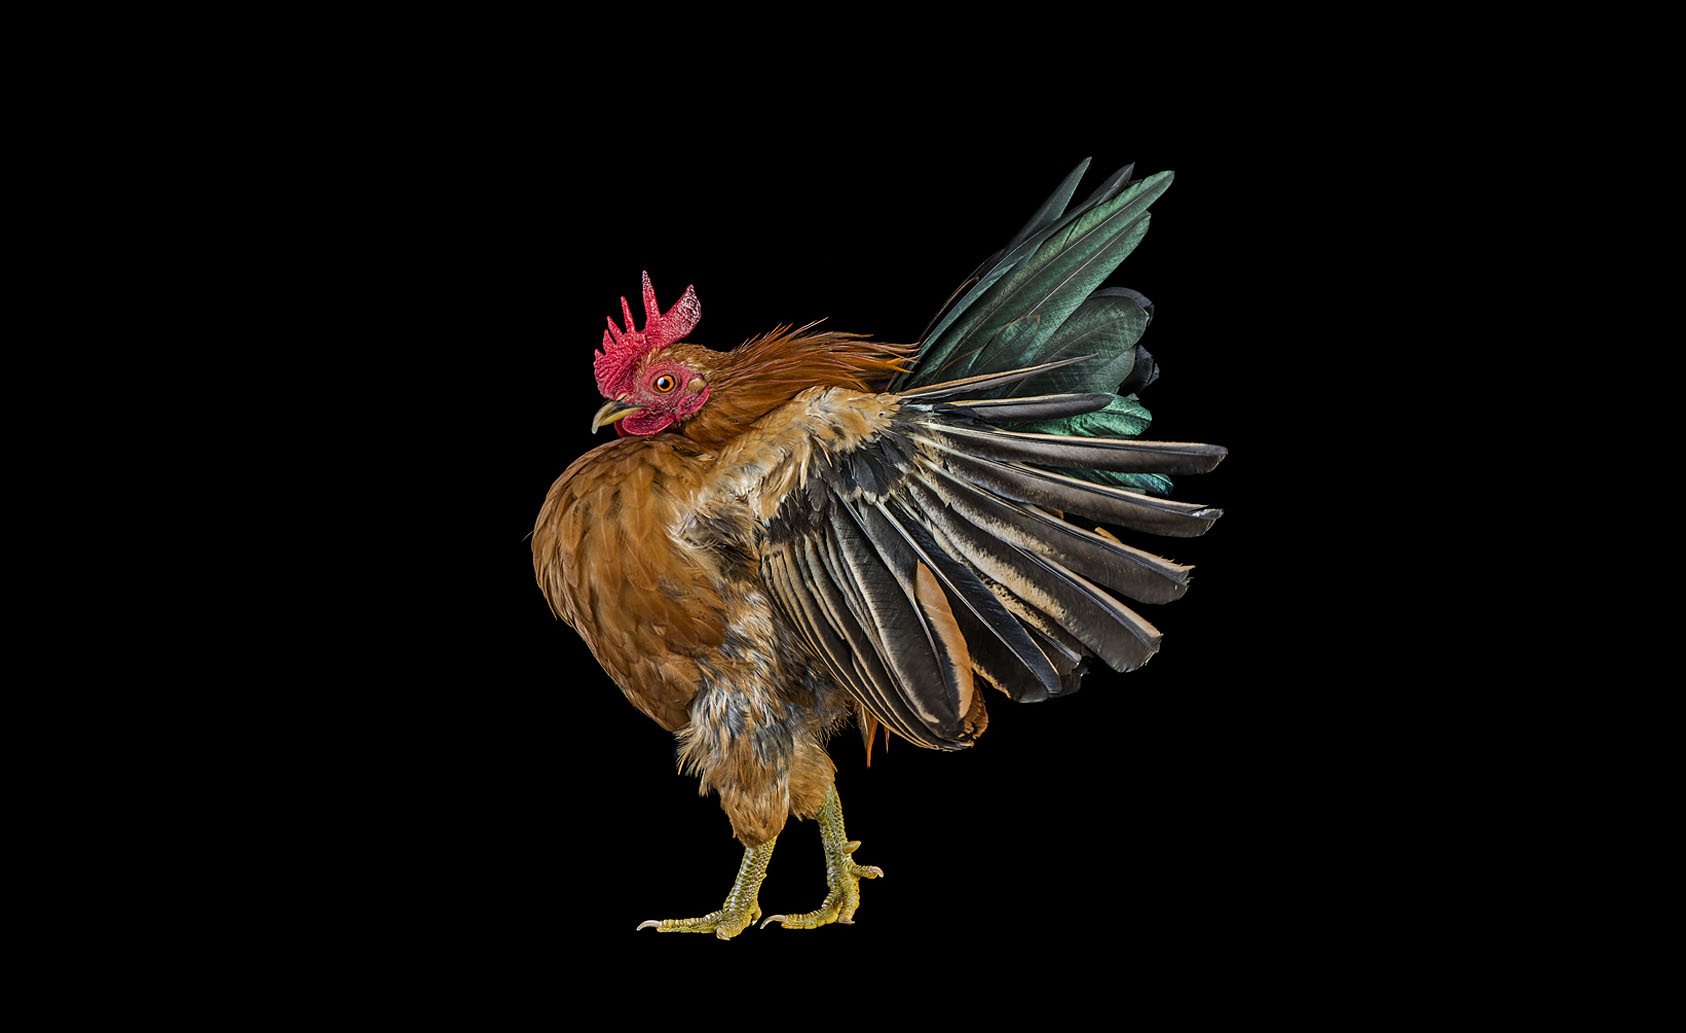 2012_002_ErnestGoh_Chicken_ERN1156